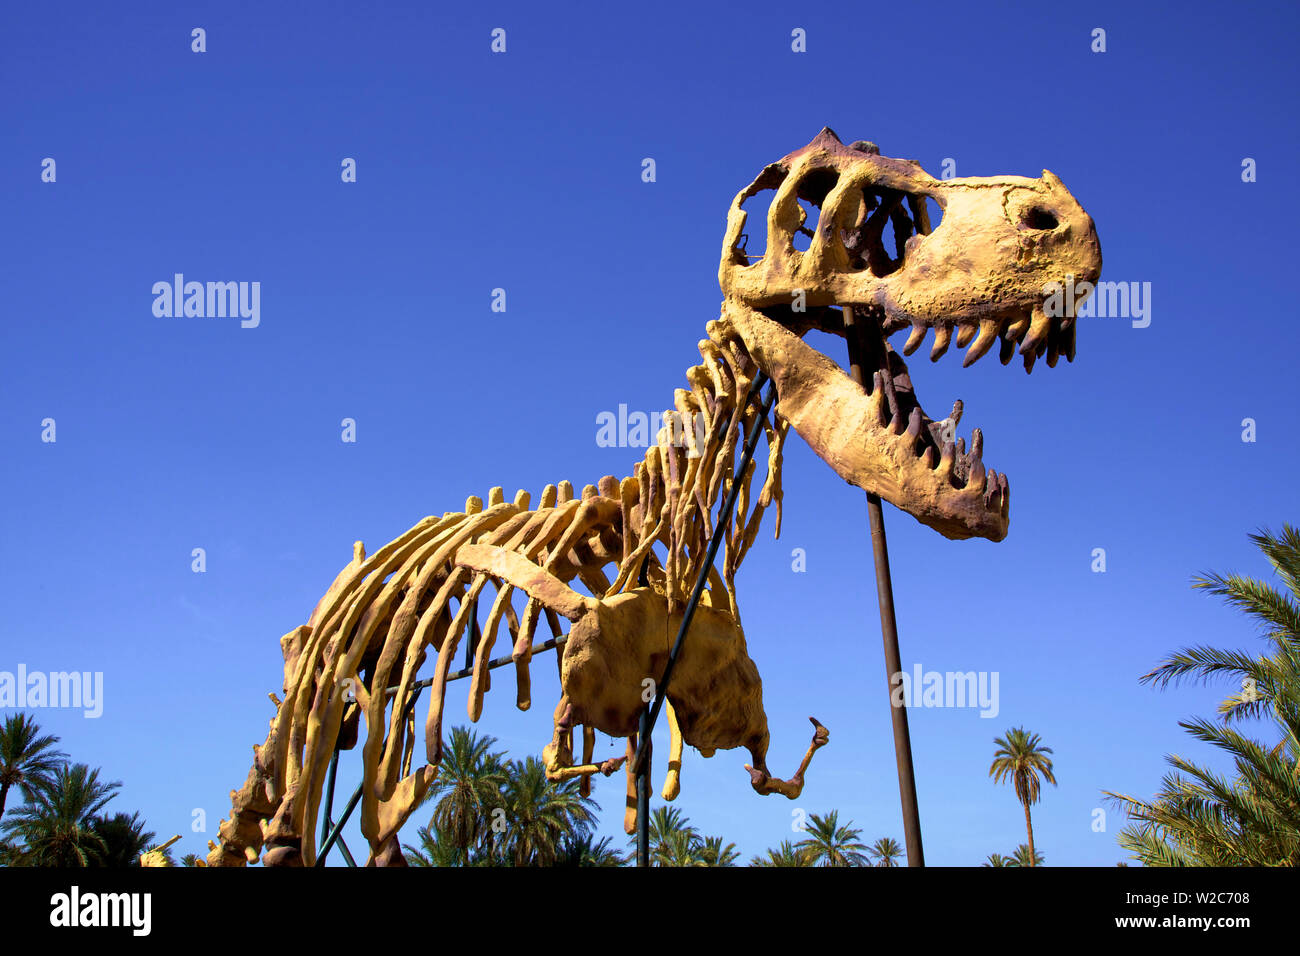 Full Scale Maquette Of A Dinosaur, Tahiri Museum, Rissani, Morocco, North Africa Stock Photo